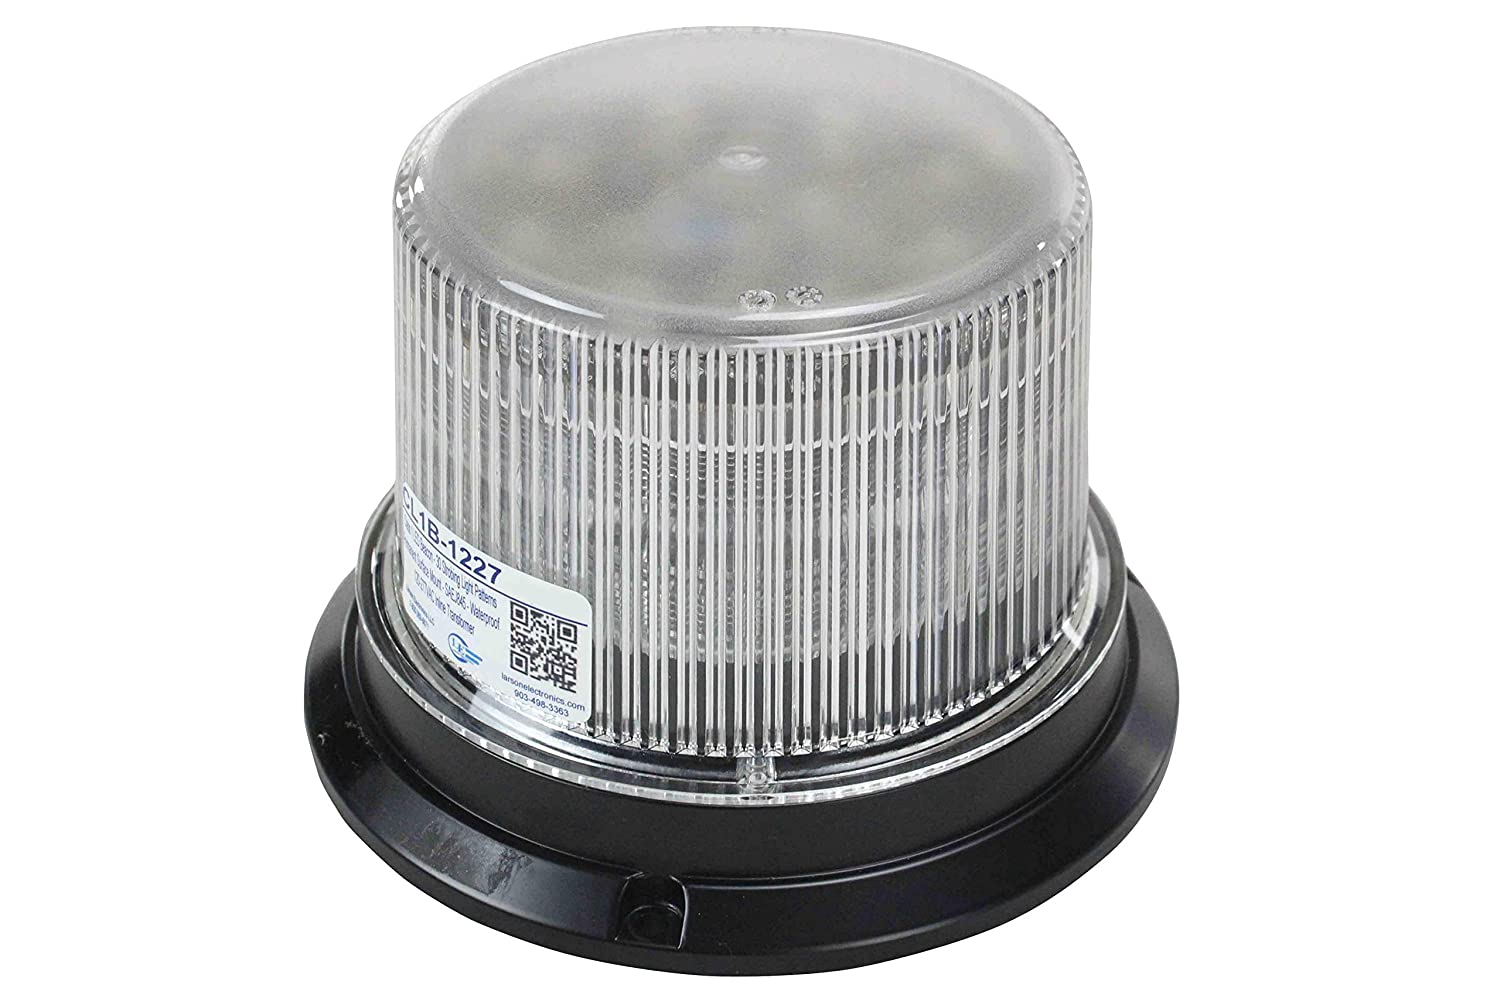 Larson Electronics 0522PG73QHS Class 1 LED Beacon with 30 Strobing Light Patterns 120//277 Permanent Surface Mount Green 1440 lm 0522PG73W04